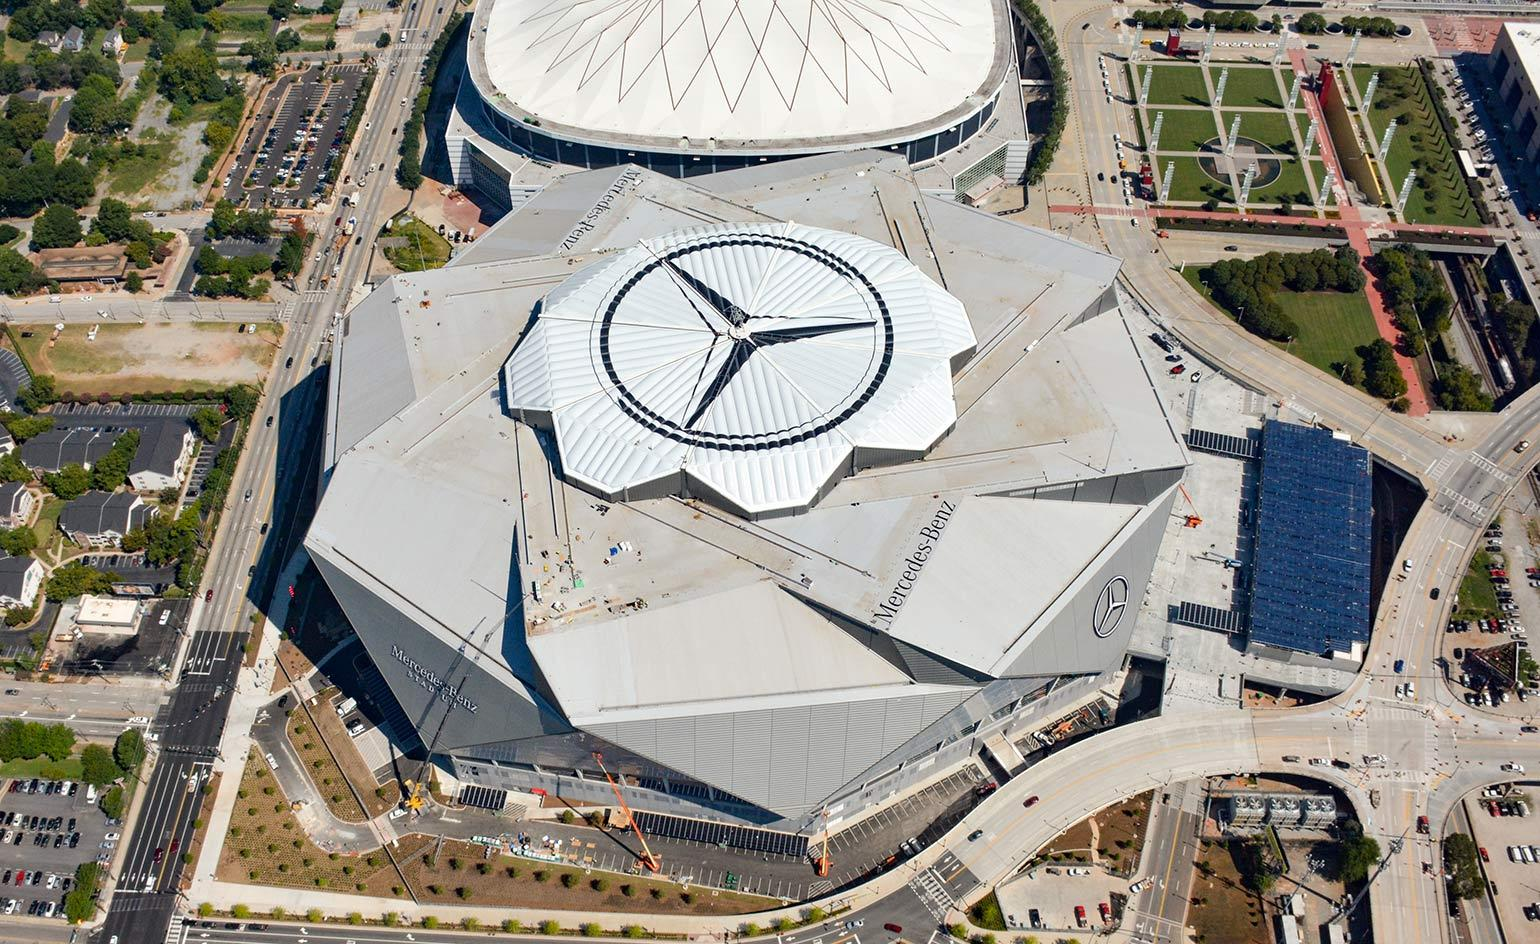 Hok Completes The Mercedes Benz Stadium In Atlanta